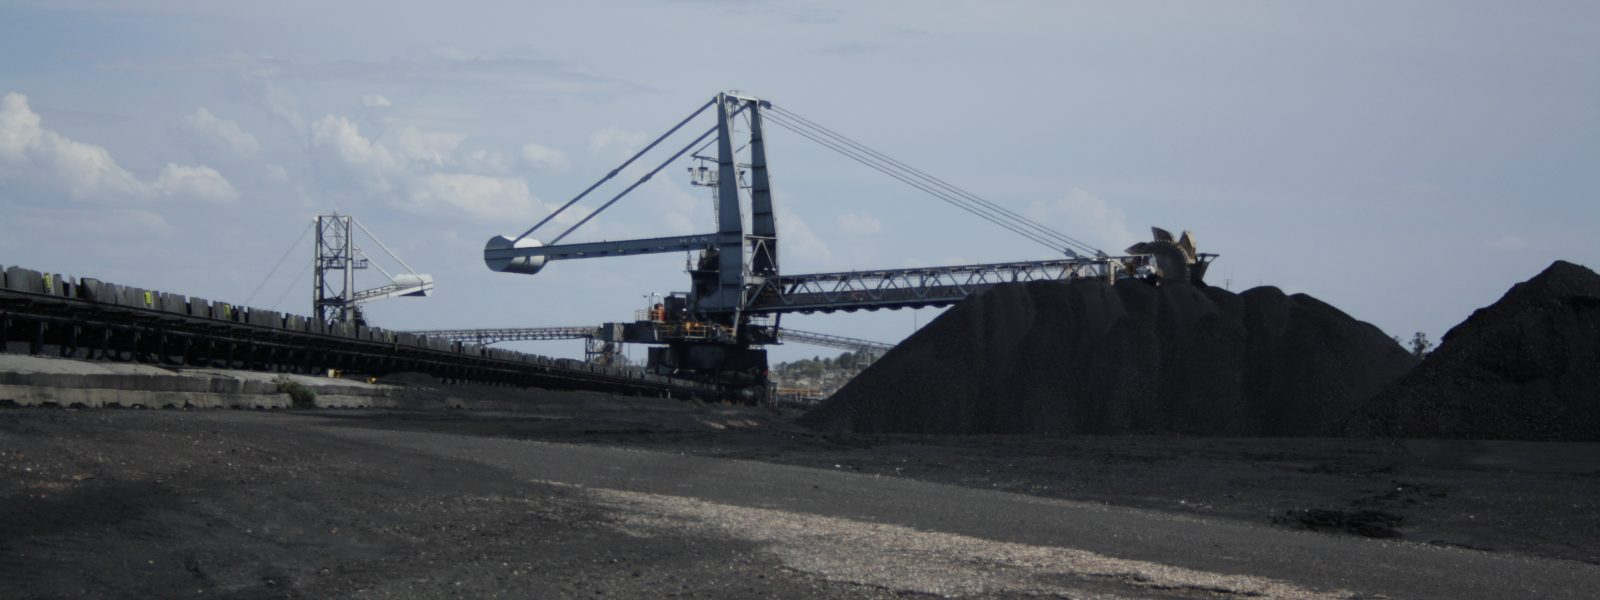 CBH Coal Supply Queensland & NSW